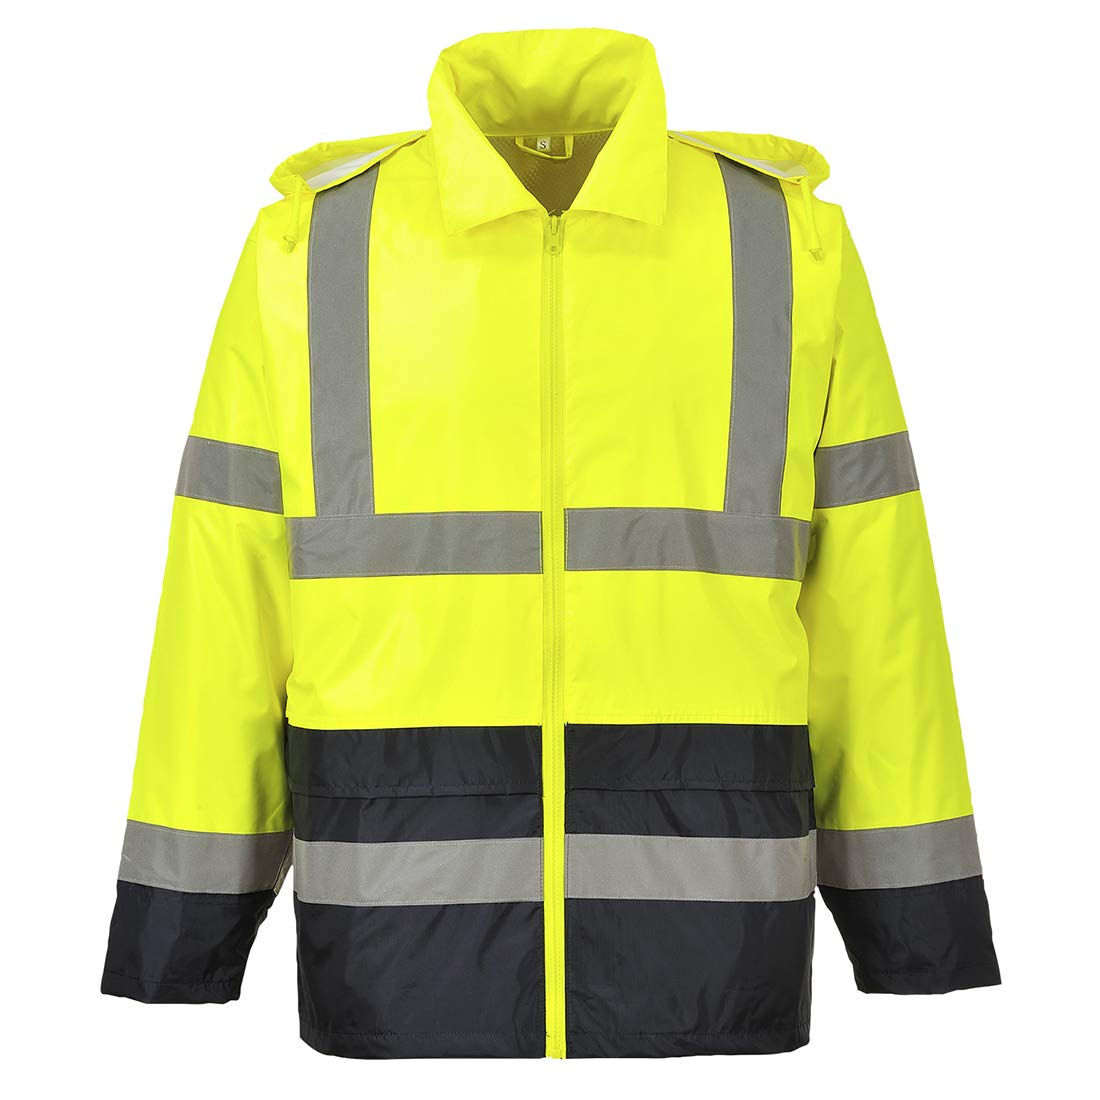 Portwest UH443YBRS Hi-Vis Contrast Rain Jacket Textile, Size- Small, Yellow/Black